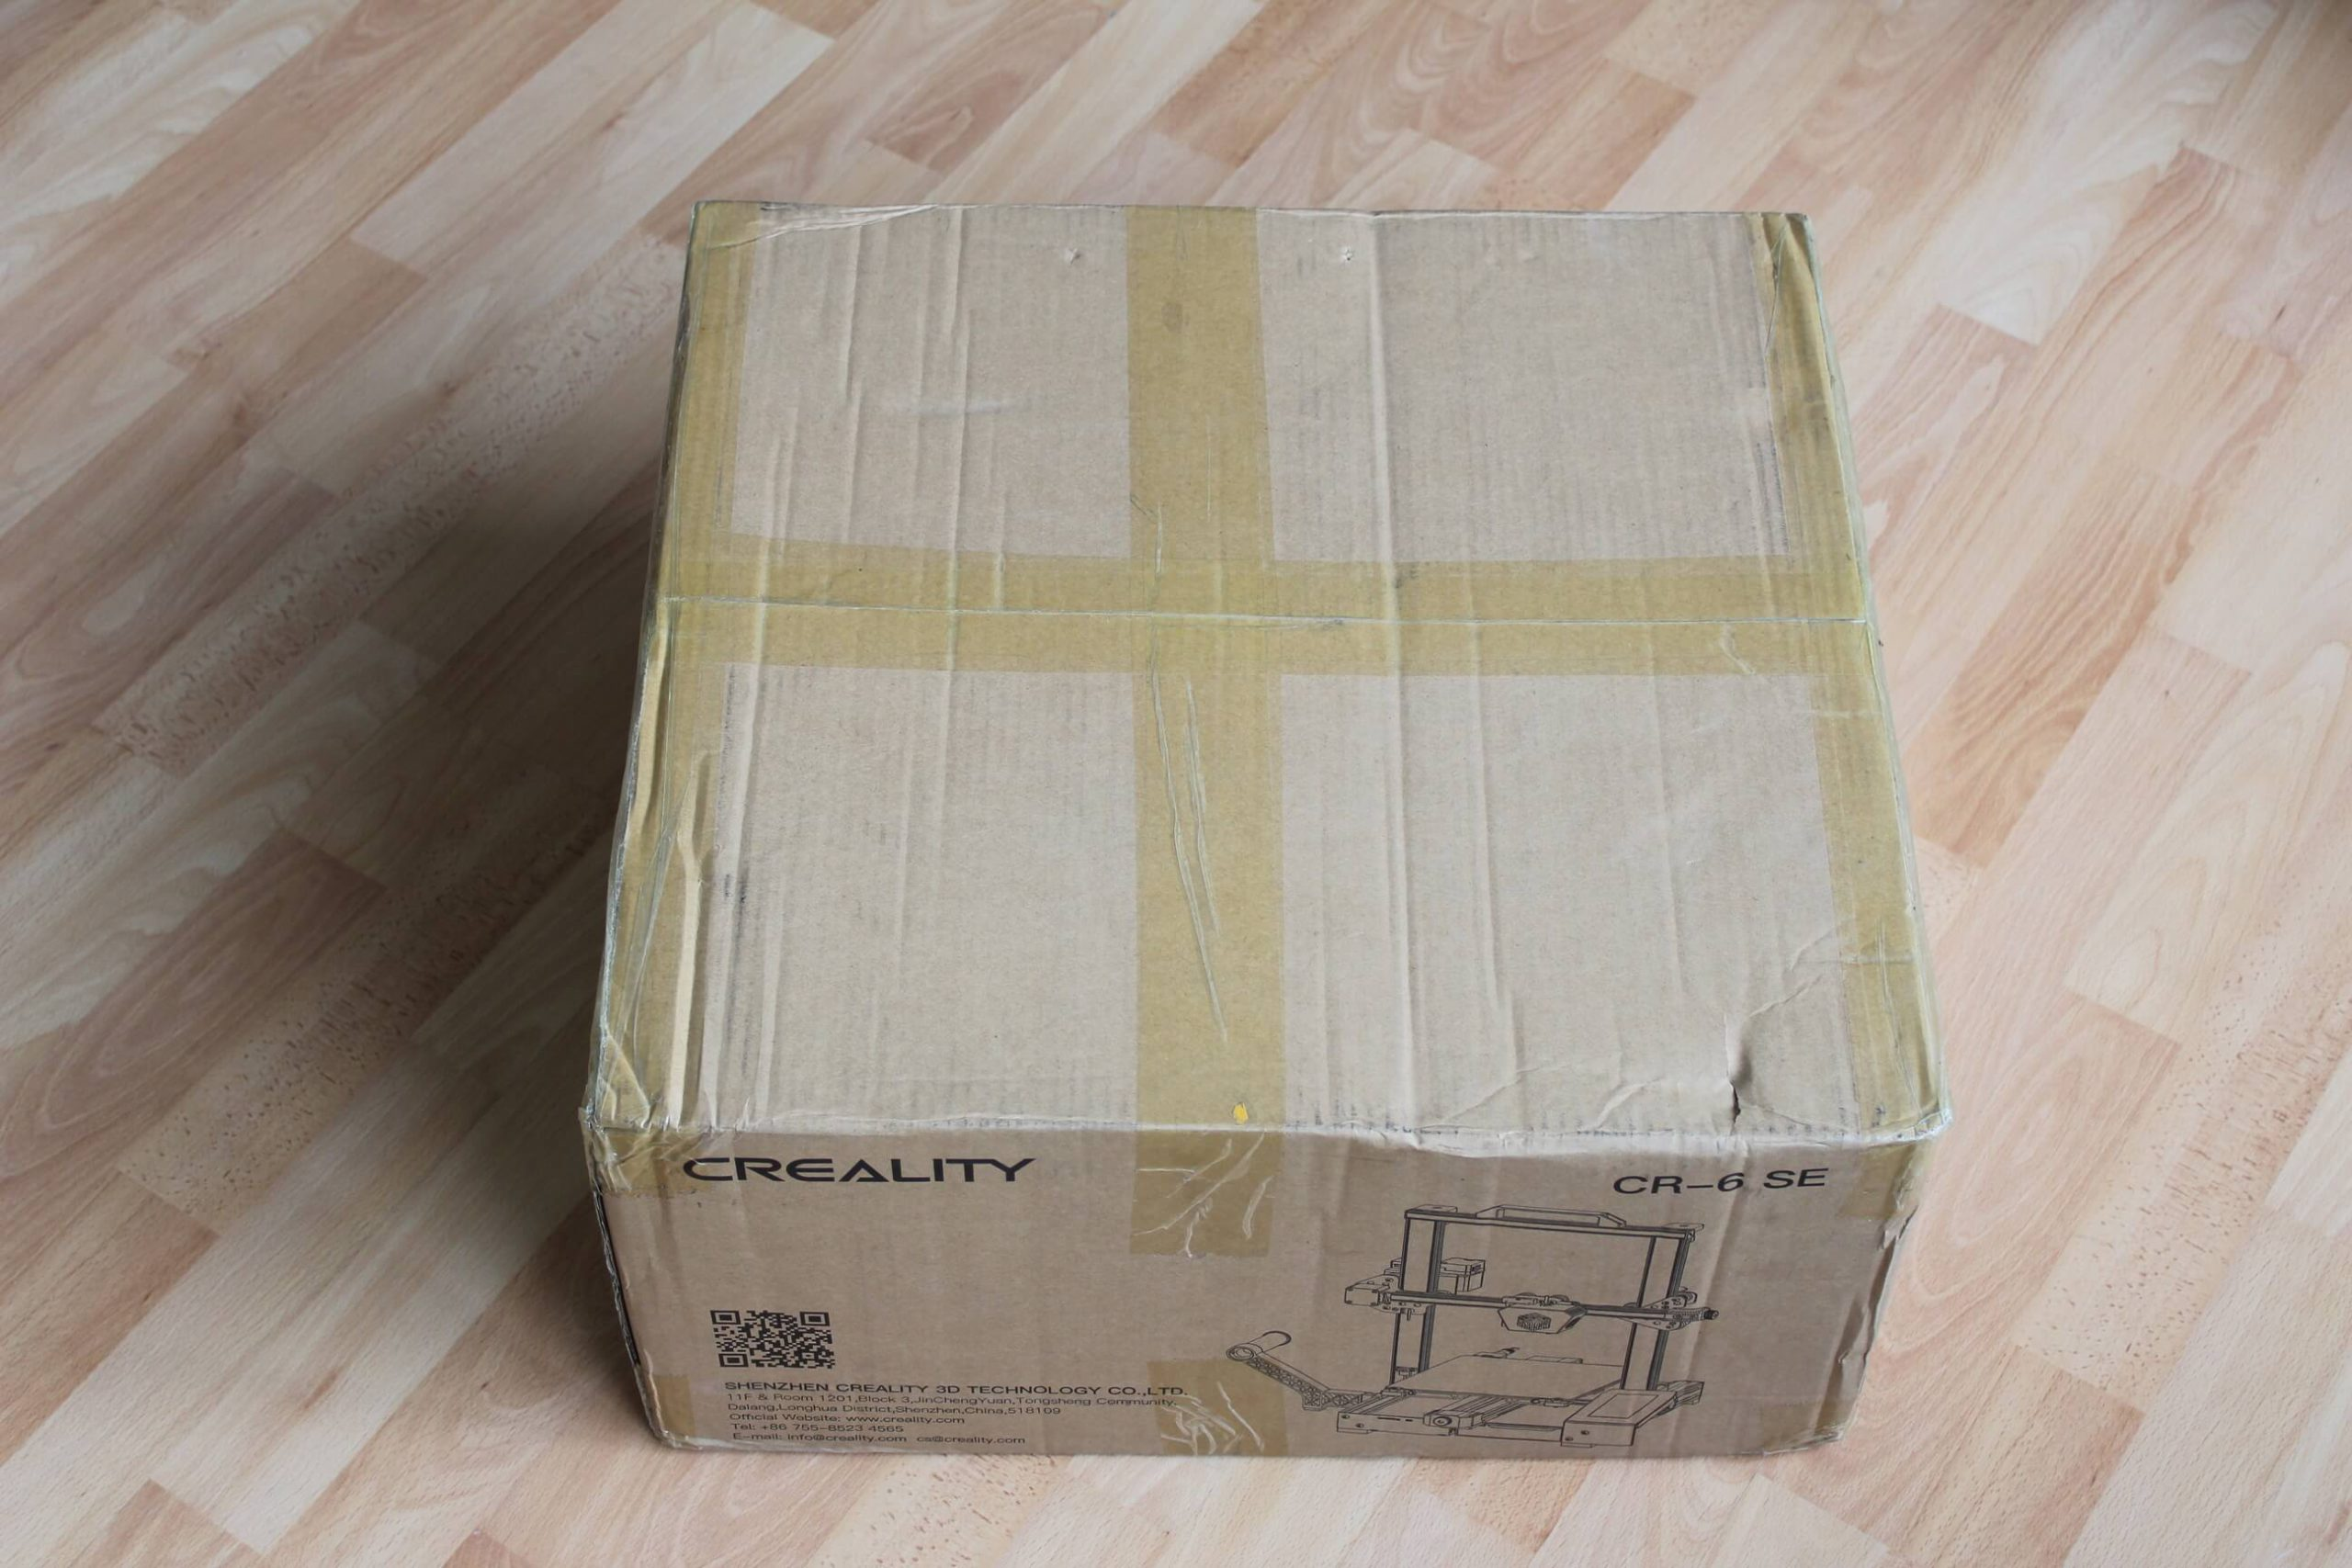 Creality-CR-6-SE-Review-Packaging-1